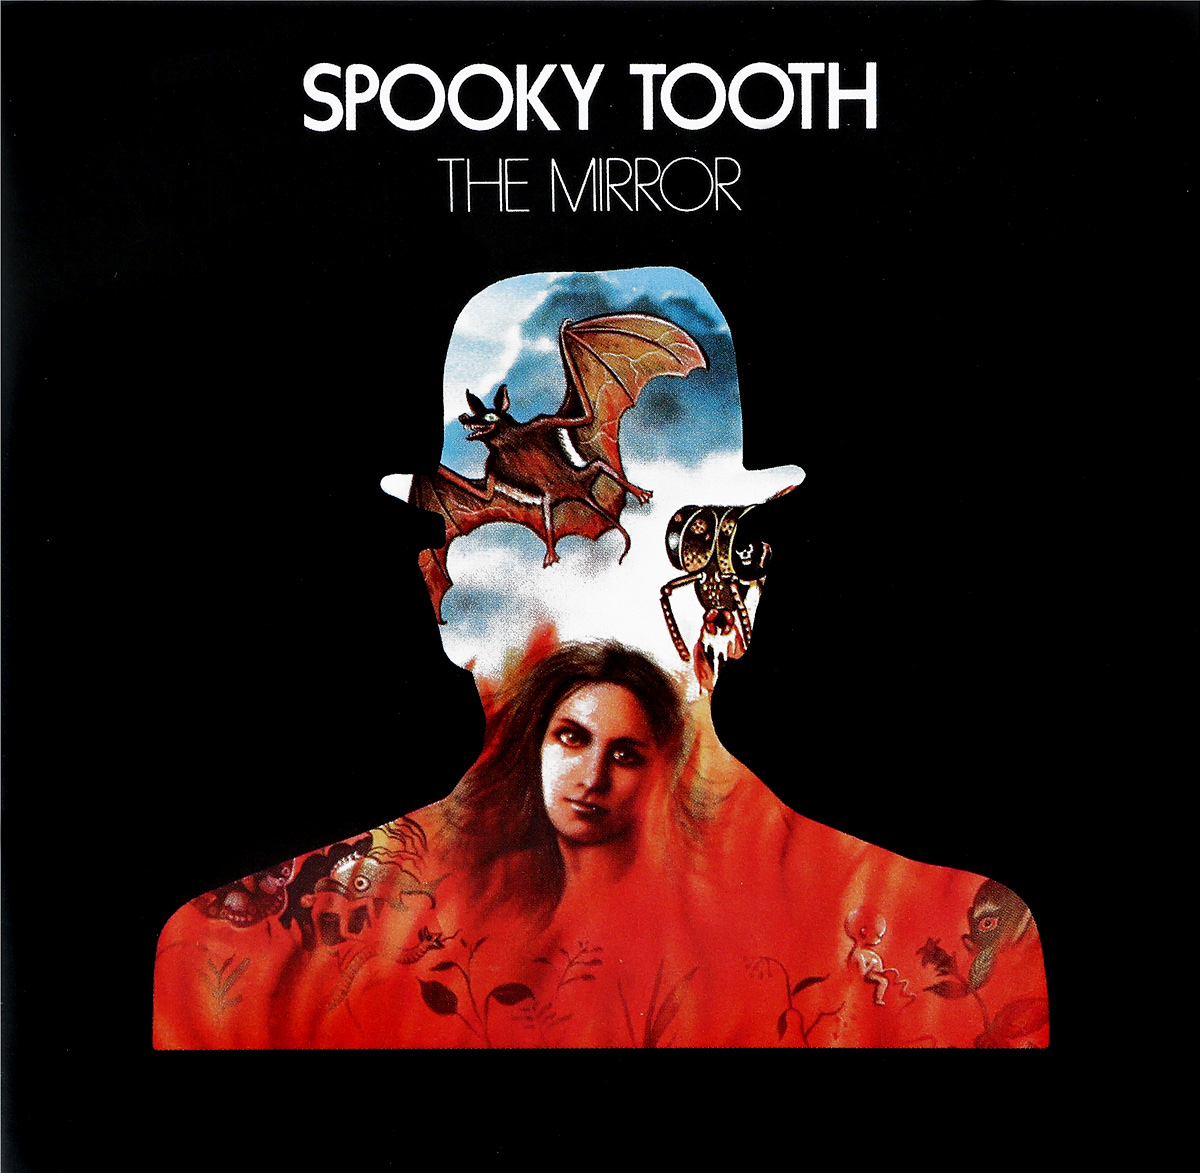 Spooky Tooth Spooky Tooth. The Mirror spooky night